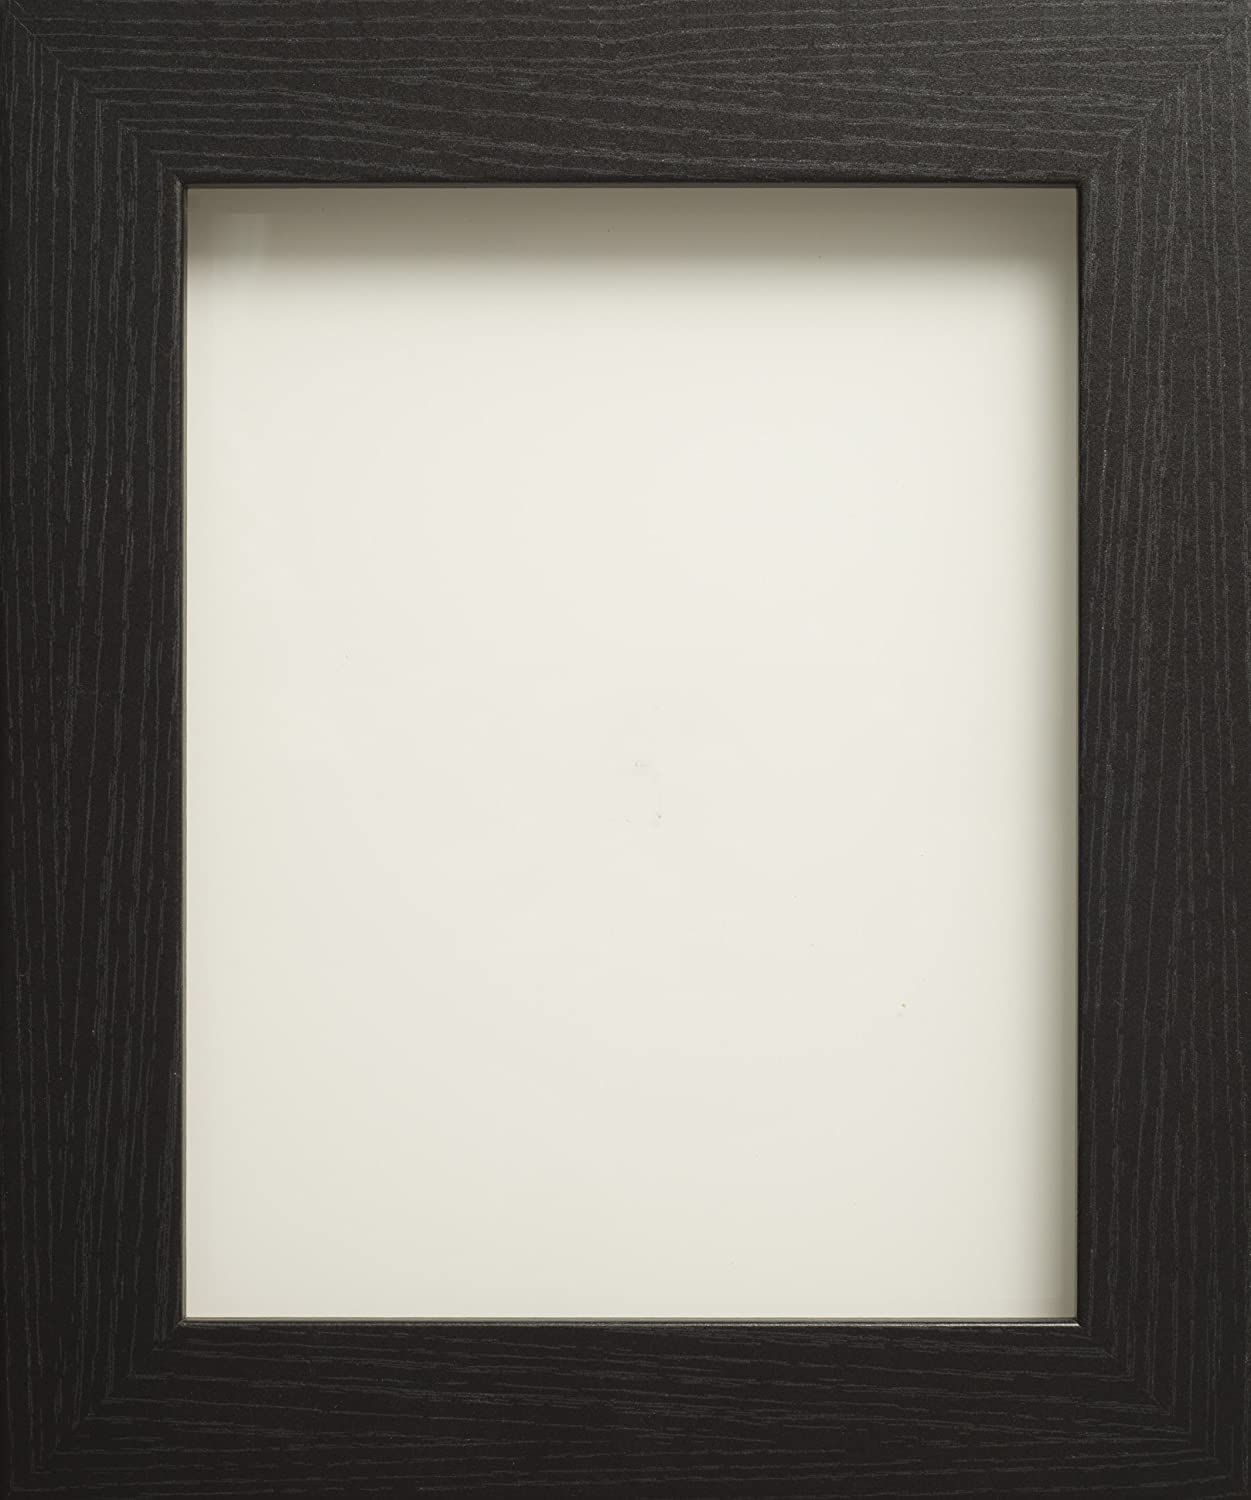 black frame. Frame Company Watson Range Picture Photo - 10 X 8 Inches, Black: Amazon.co.uk: Kitchen \u0026 Home Black E